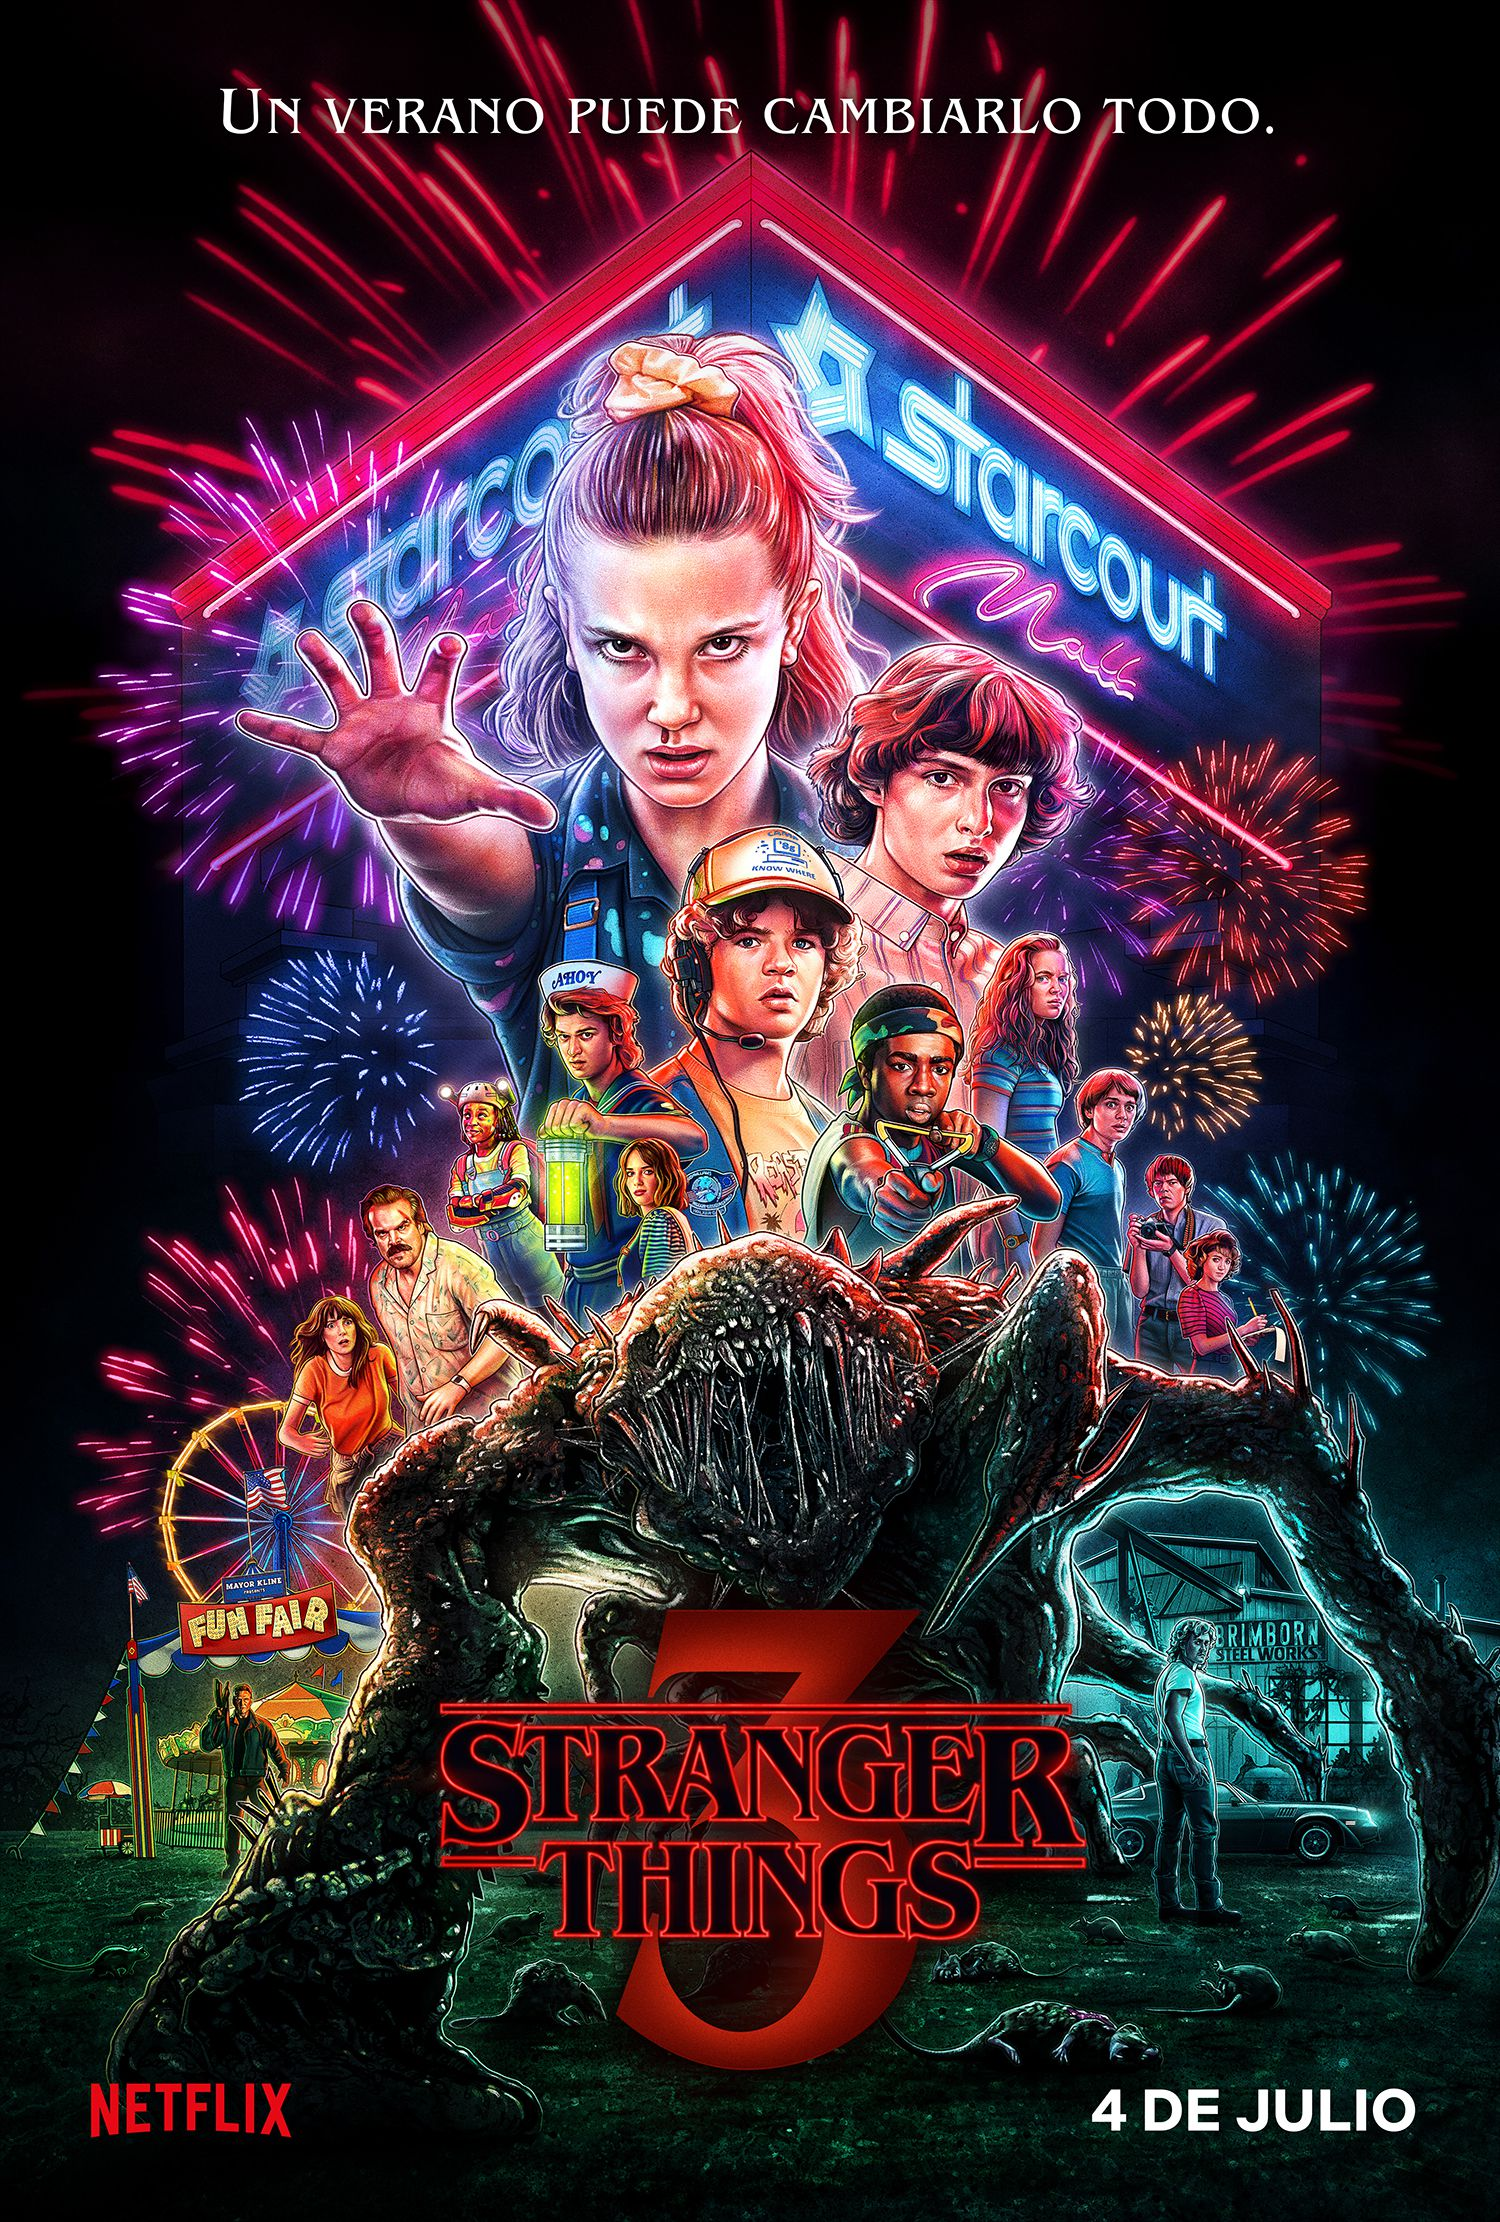 Stranger Things 3 Poster.jpg